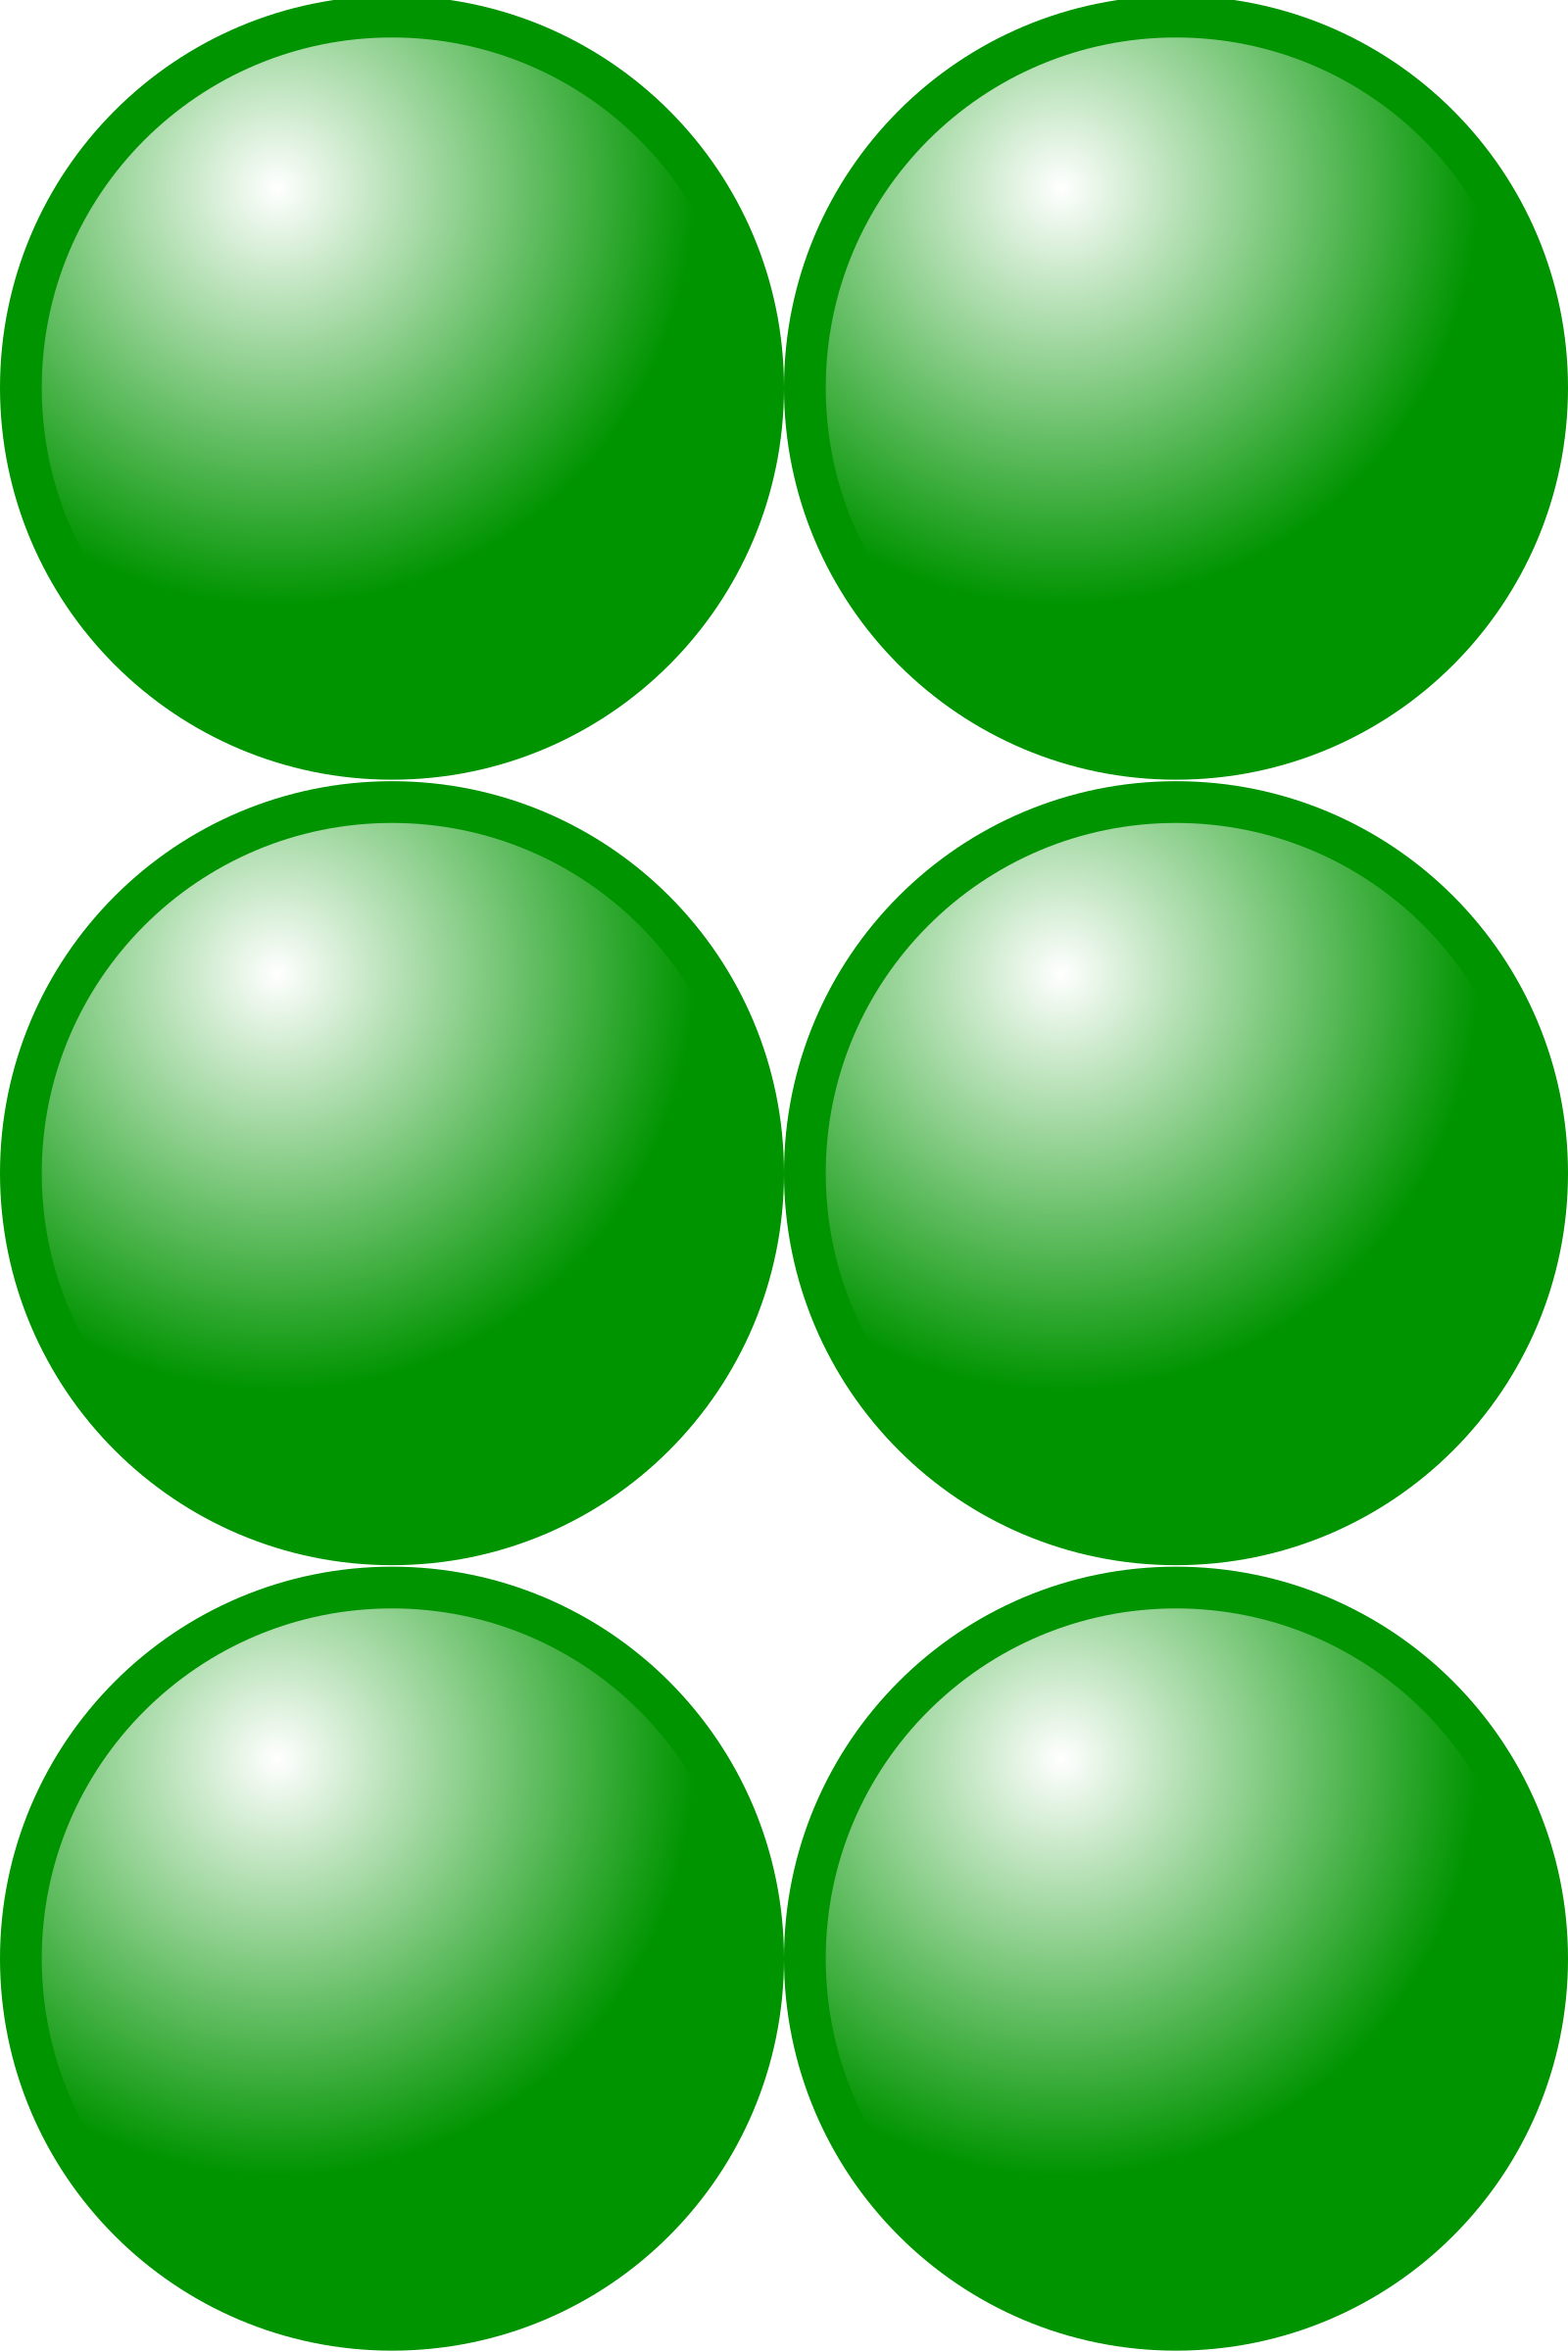 Beads quantitative picture for. Multiplication clipart icon